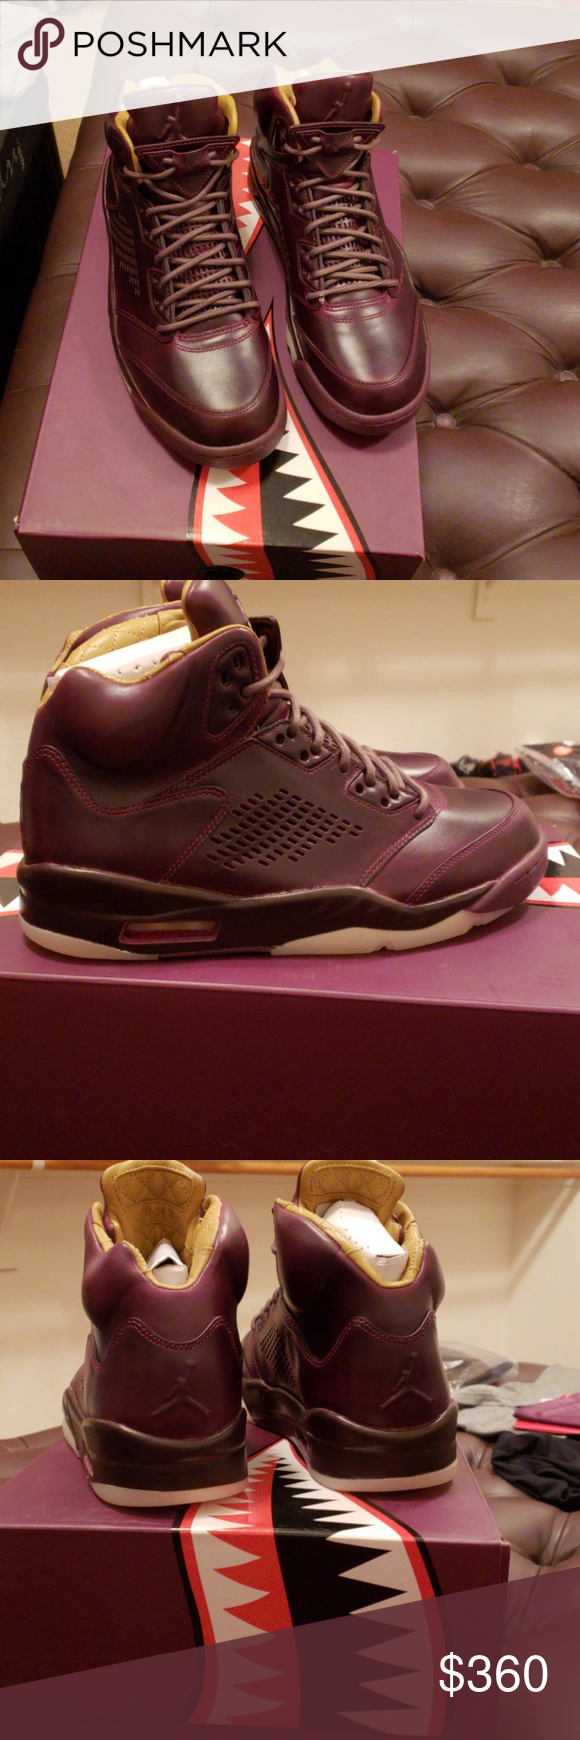 1402b75f961 Air Jordan 5 Retro Prem Brand new with box and dust bag Air Jordan 5 Retro  Premium. Purple with peanut quilted leather insides. Jordan Shoes Sneakers